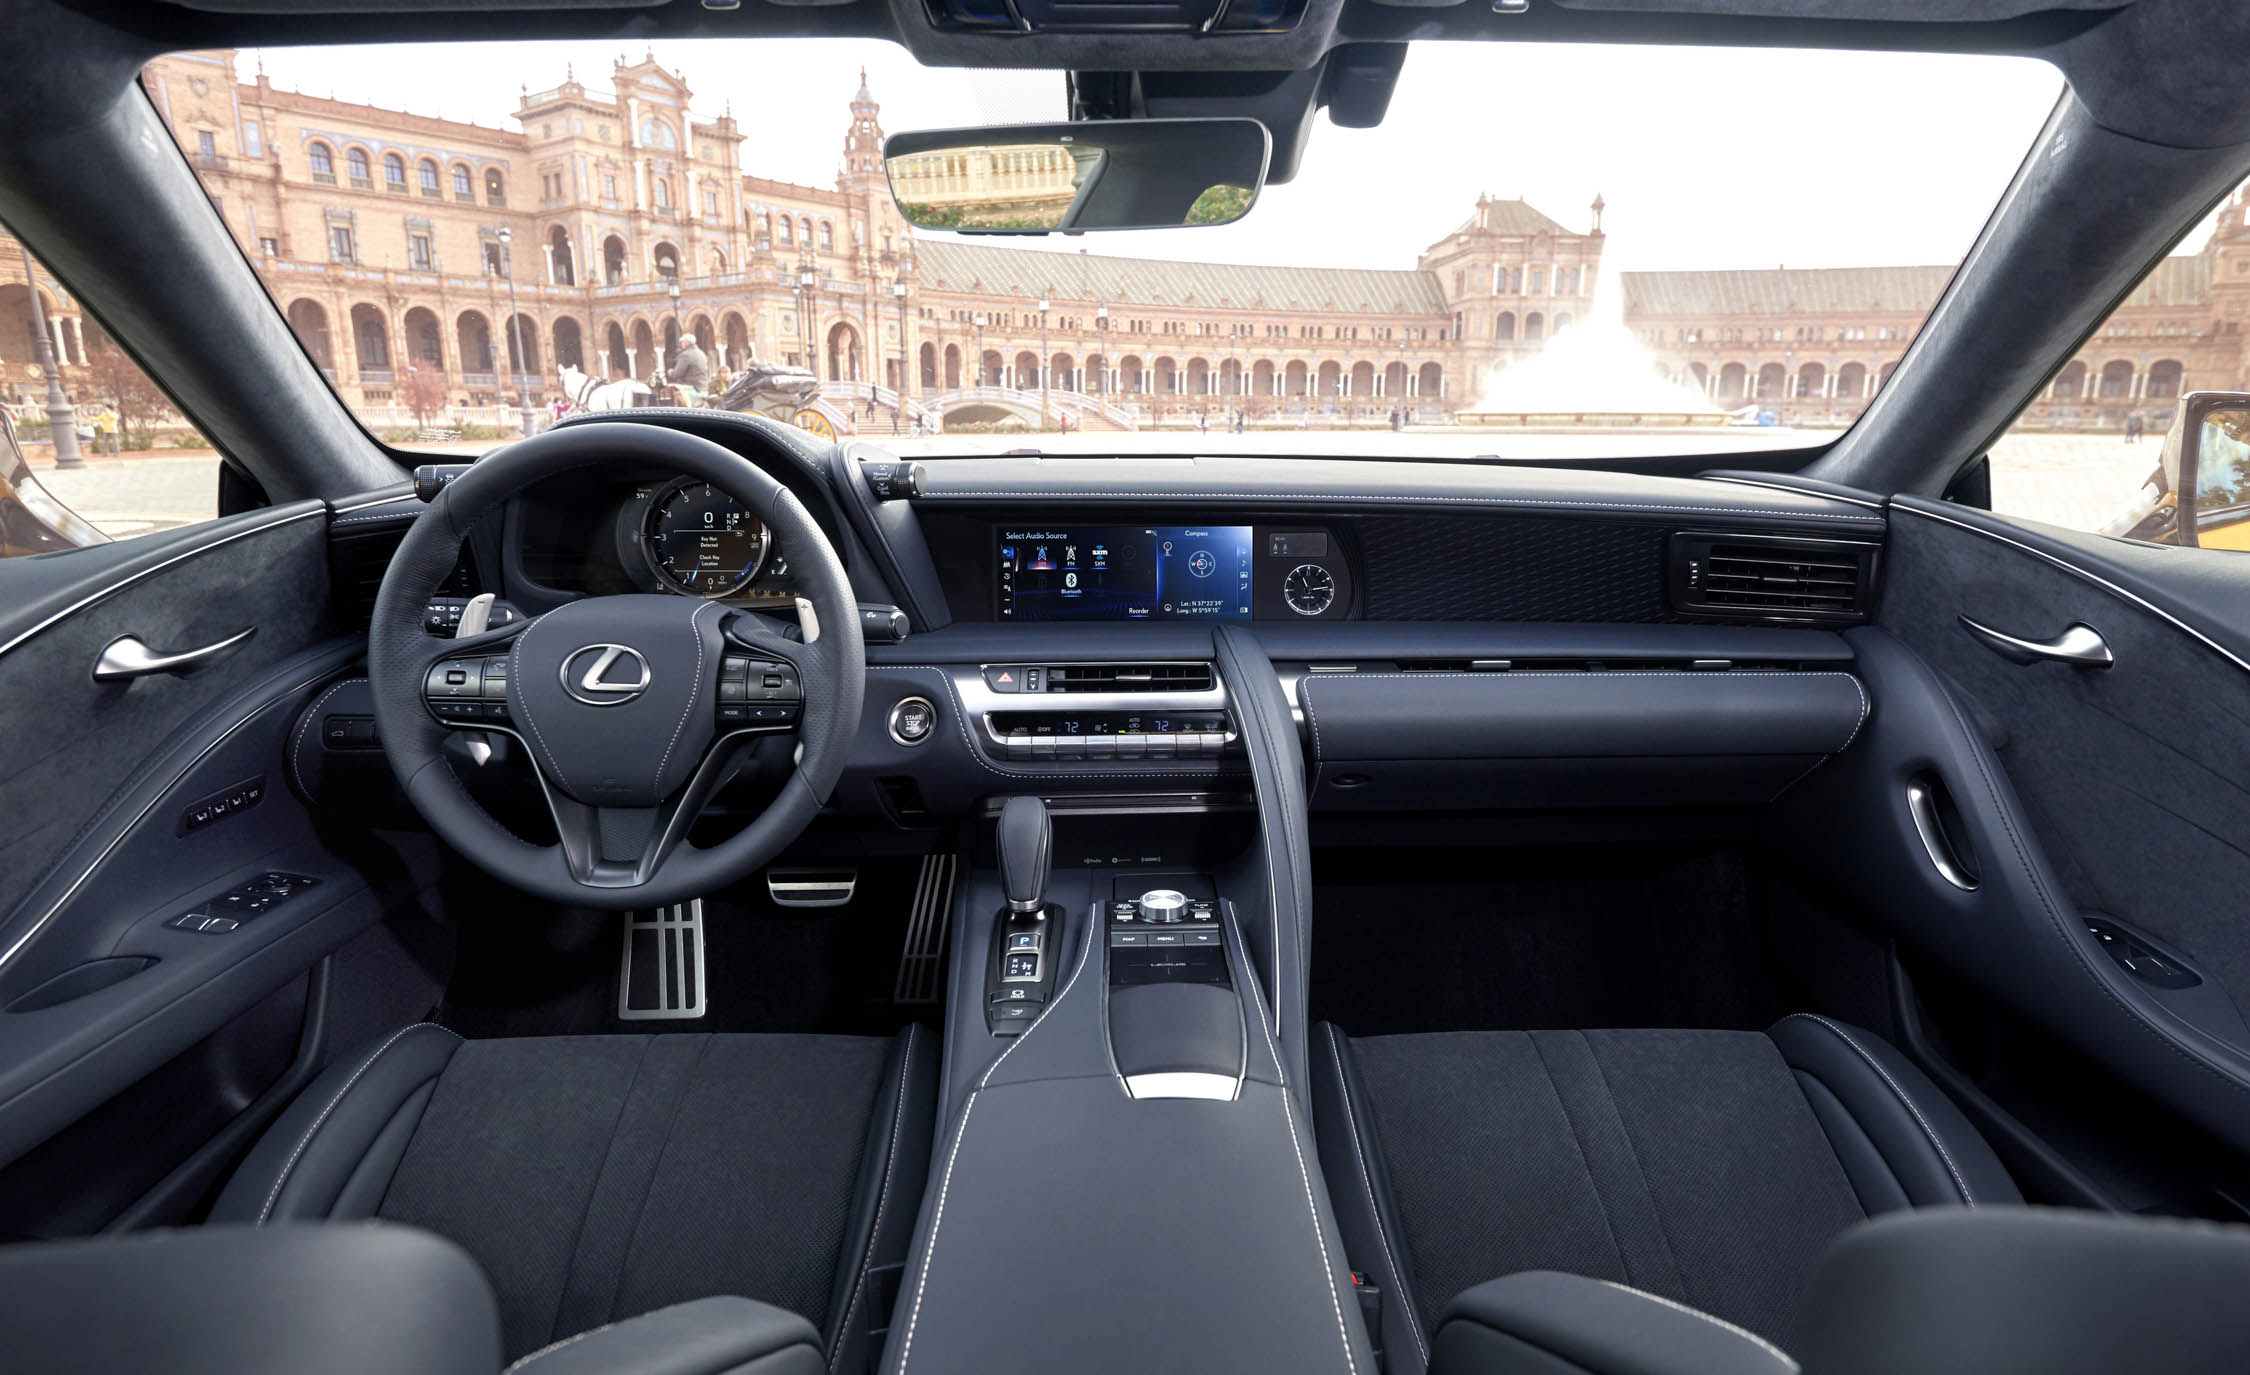 2018 Lexus Lc 500 Black Interior (View 70 of 84)